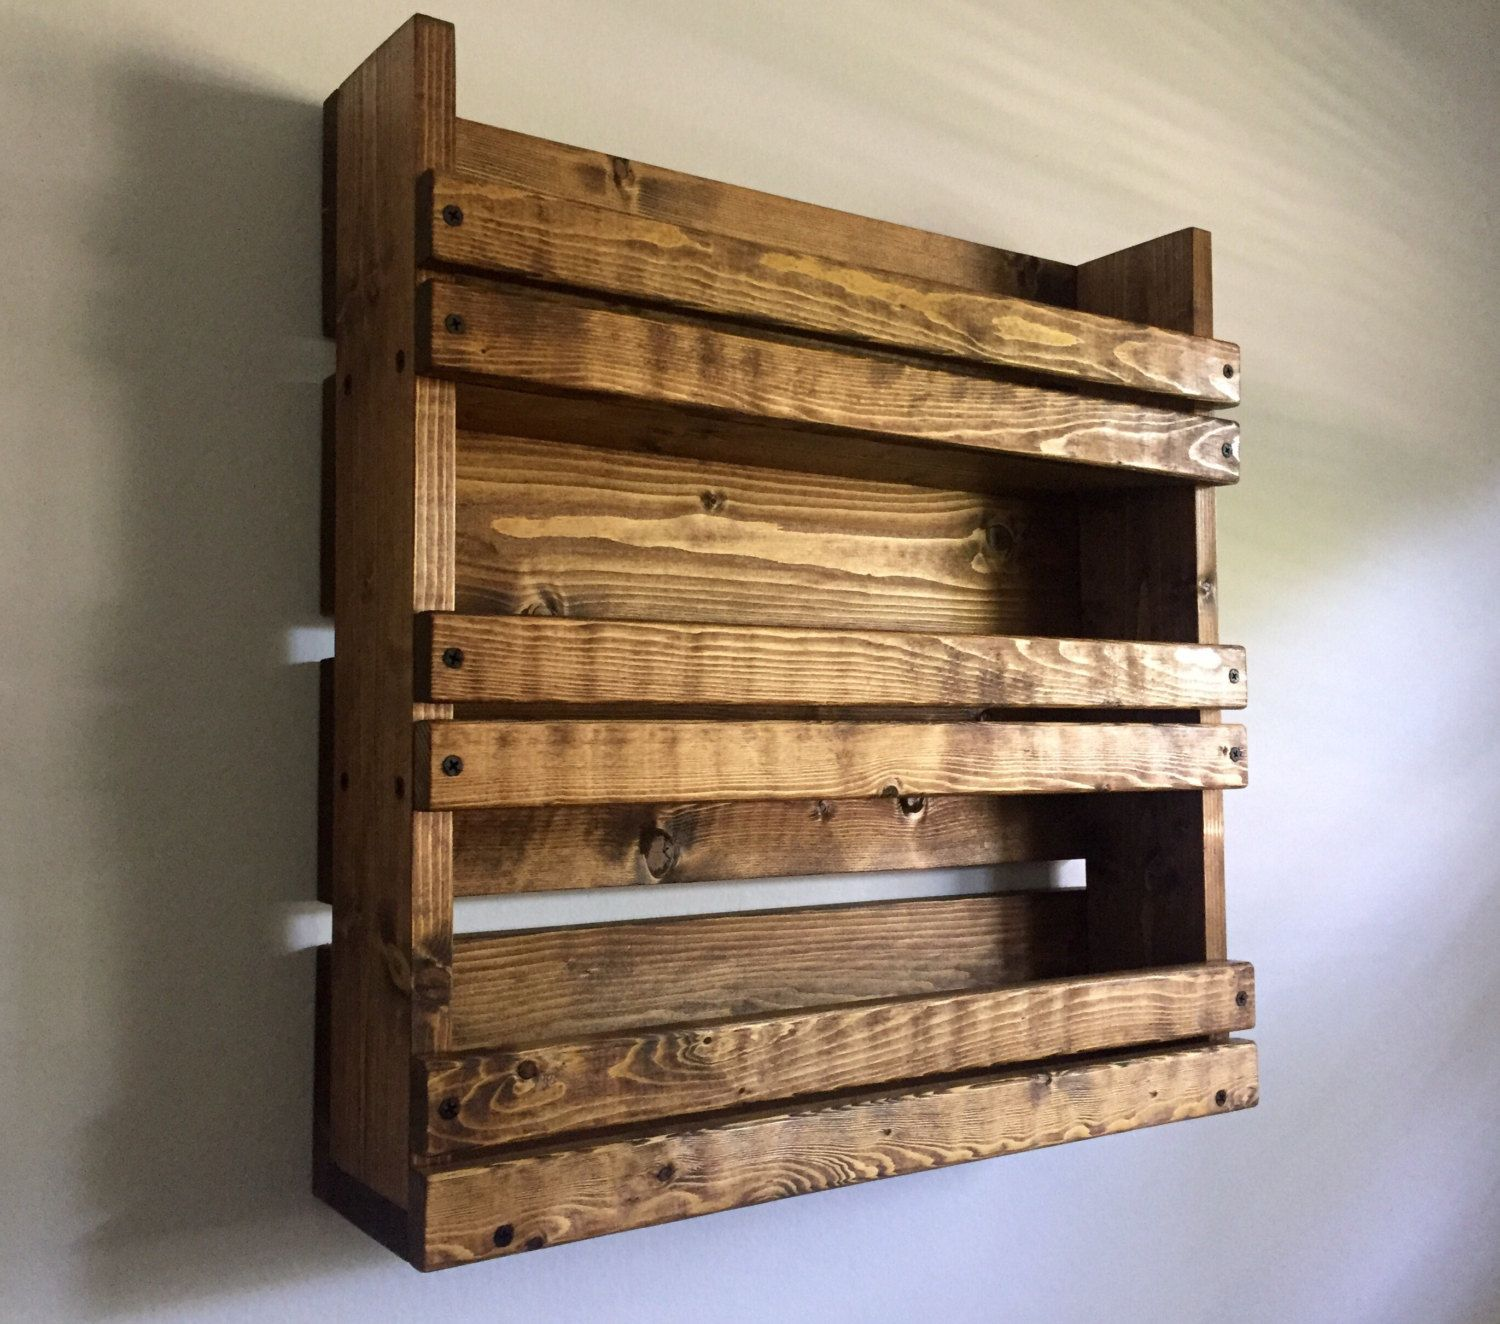 Wooden Spice Rack Wall Mount Stunning Spice Rack Rustic Spice Rack With 3 Shelves Kitchen Organizer